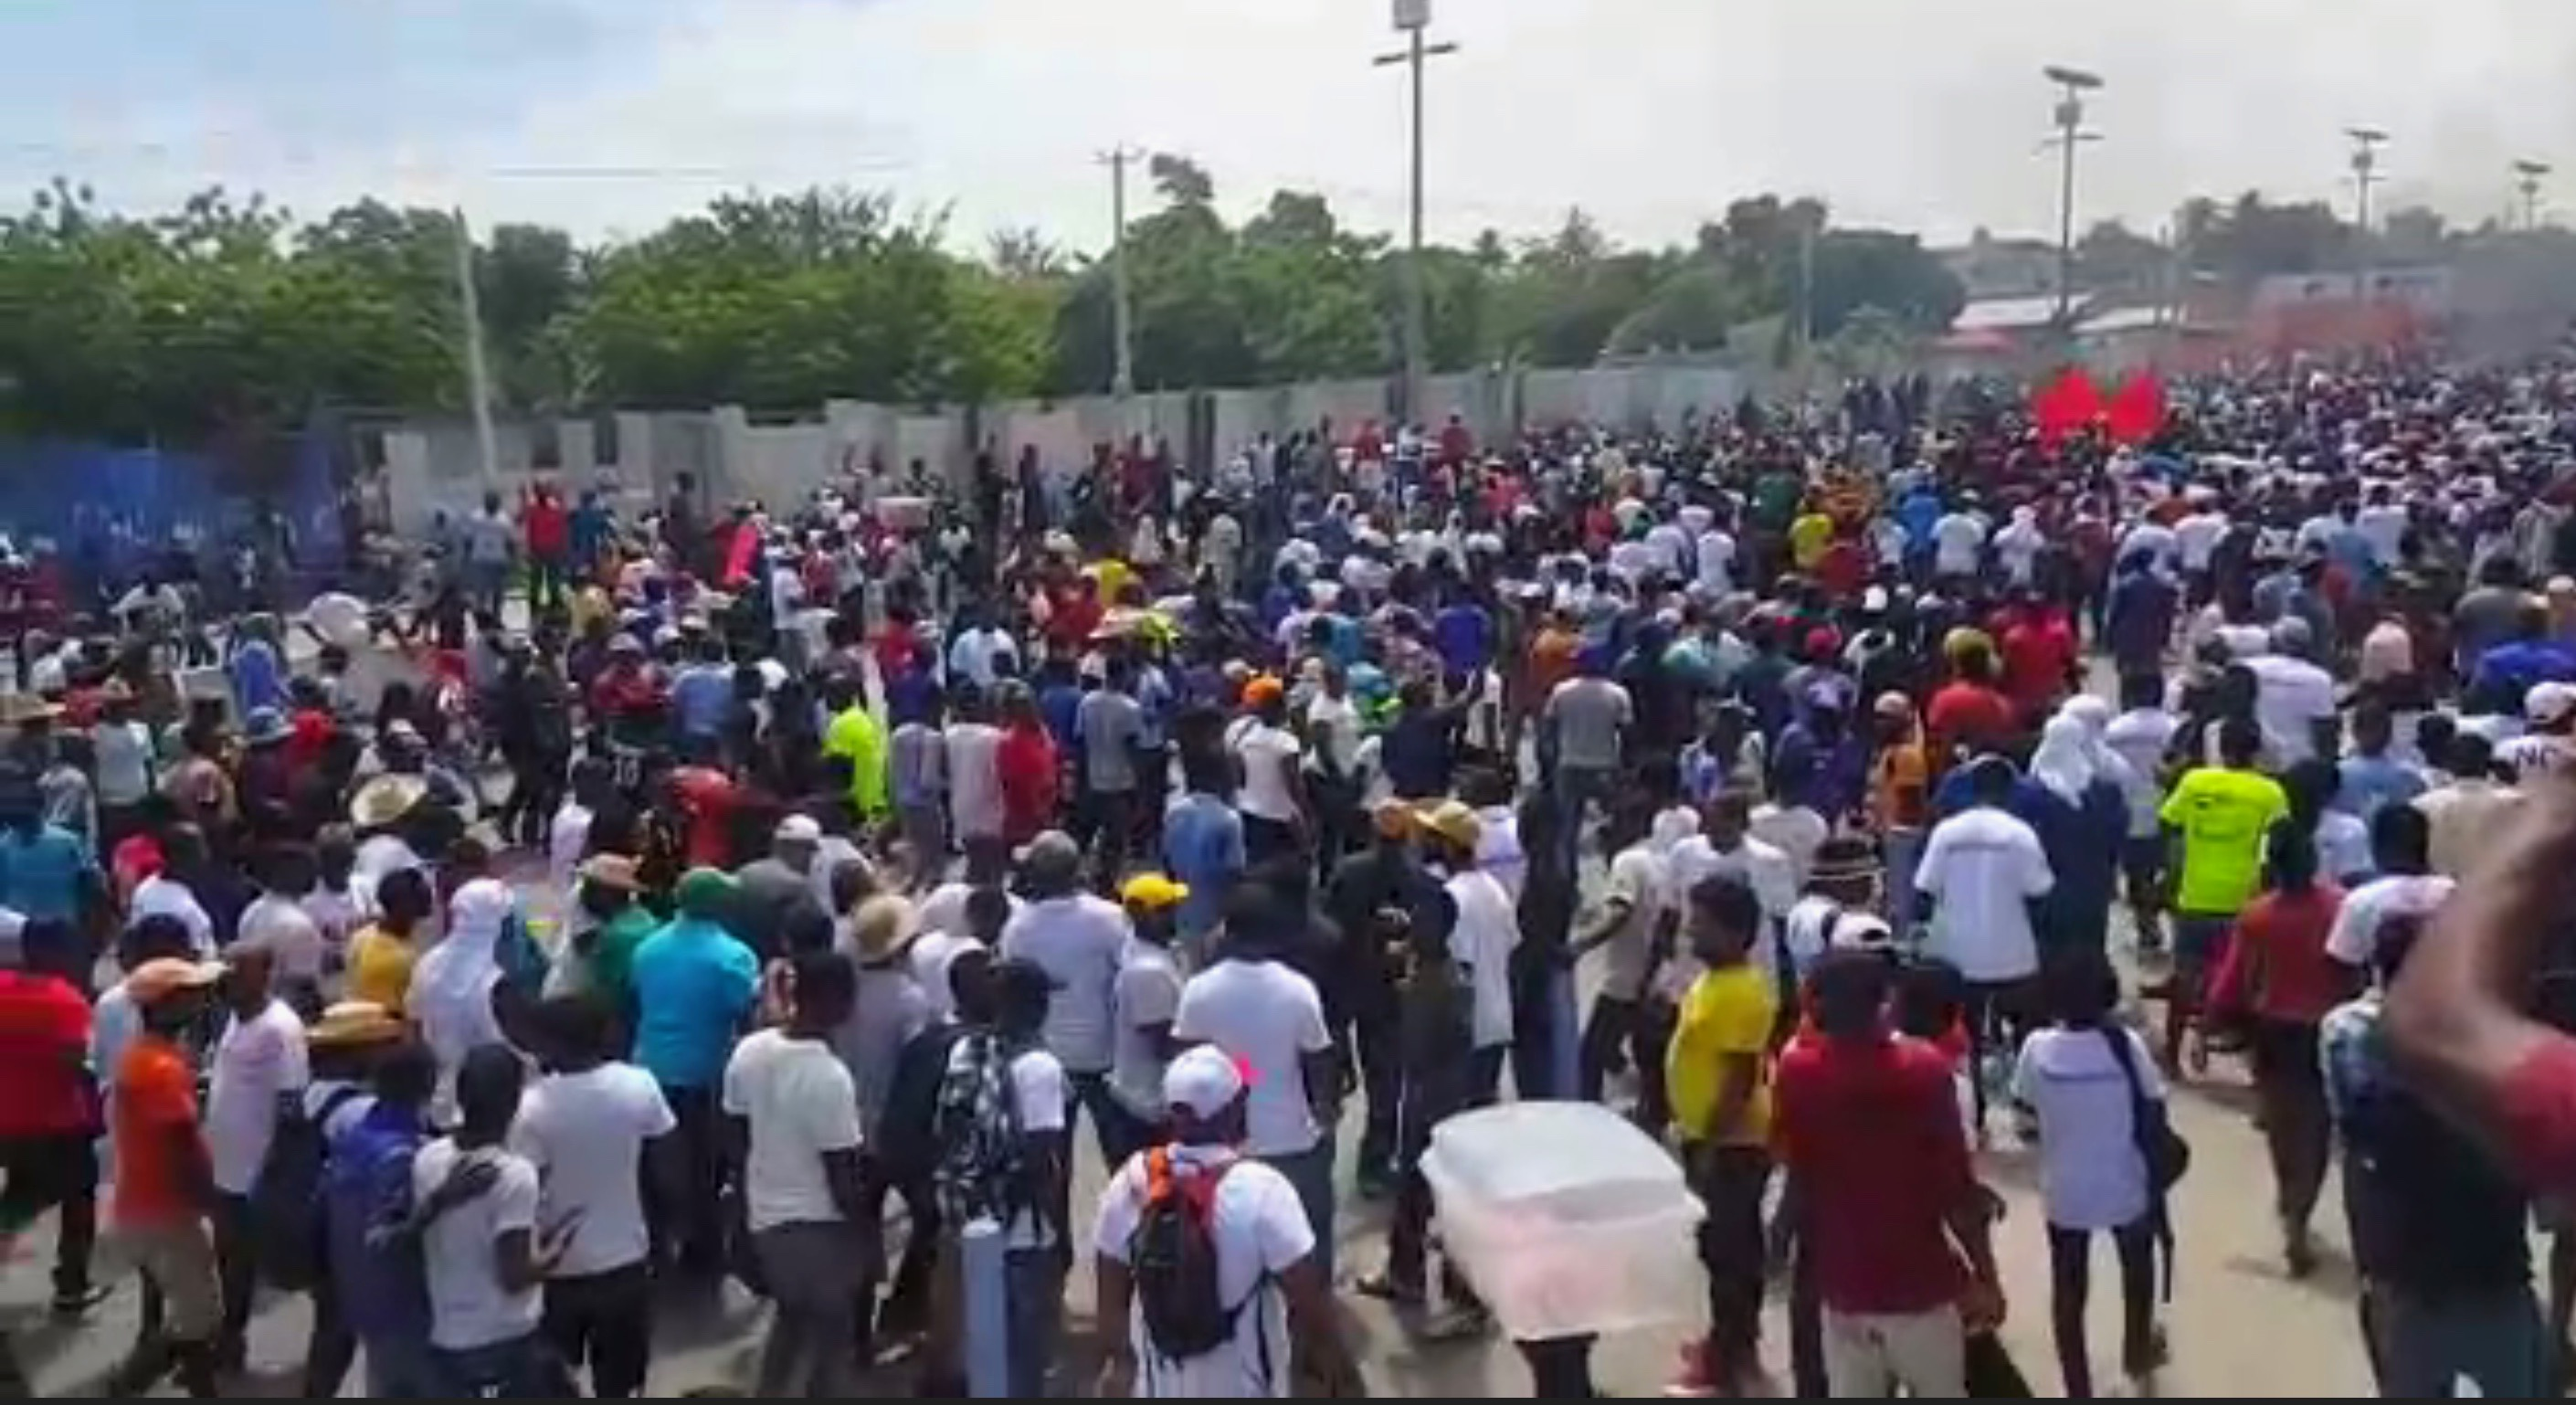 https://peoplesdispatch.org/2019/06/10/haitians-mobilize-in-thousands-demanding-president-moises-resignation/